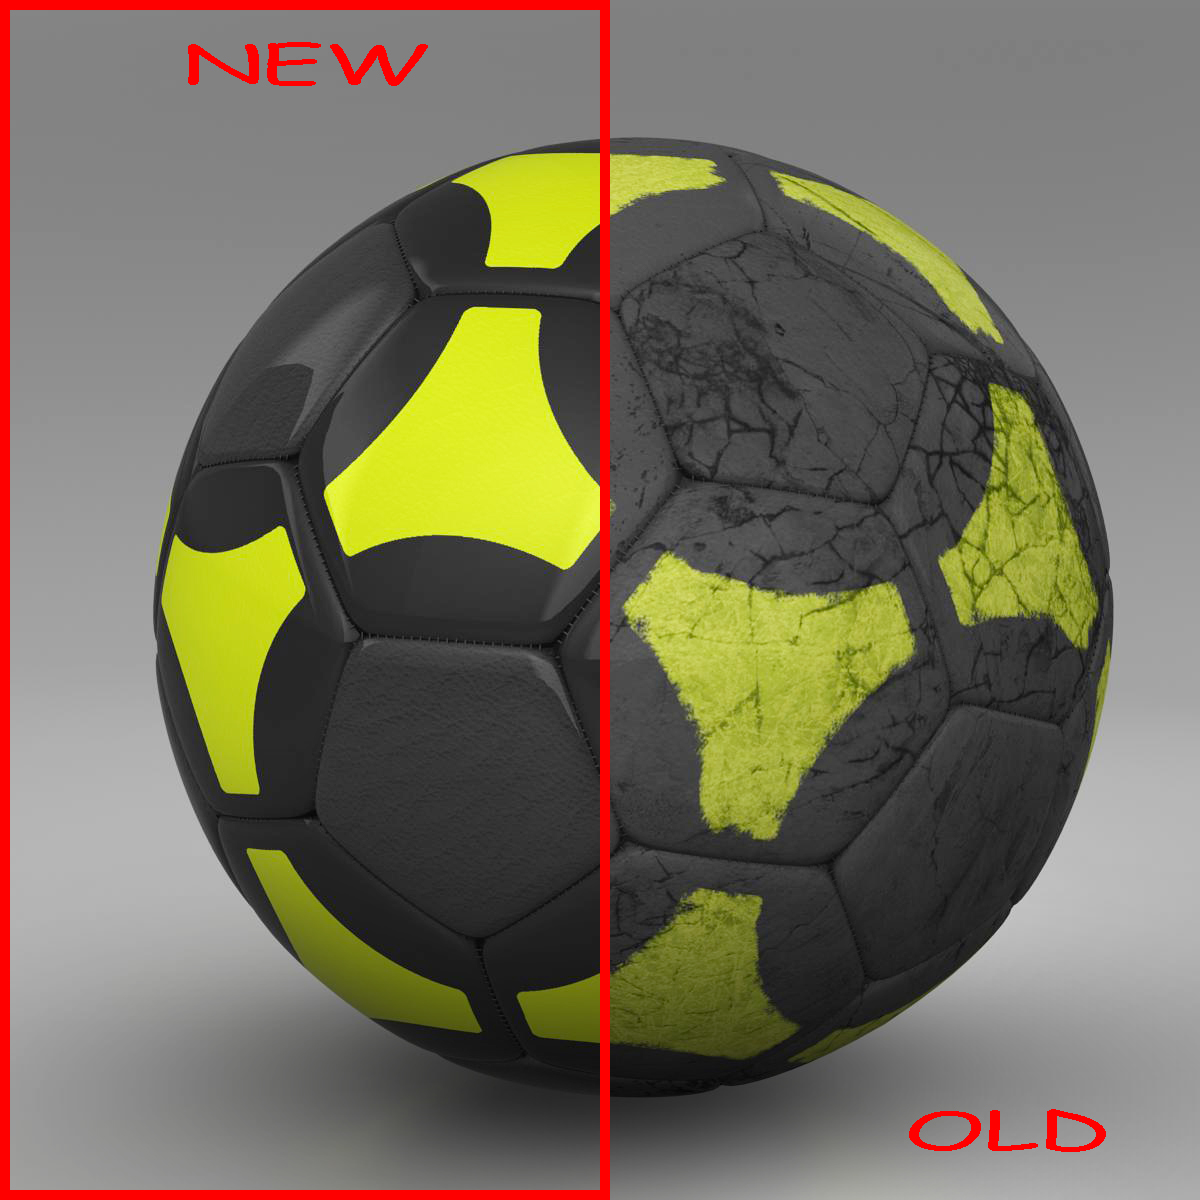 soccerball black yellow 3d model 3ds max fbx c4d ma mb obj 204205